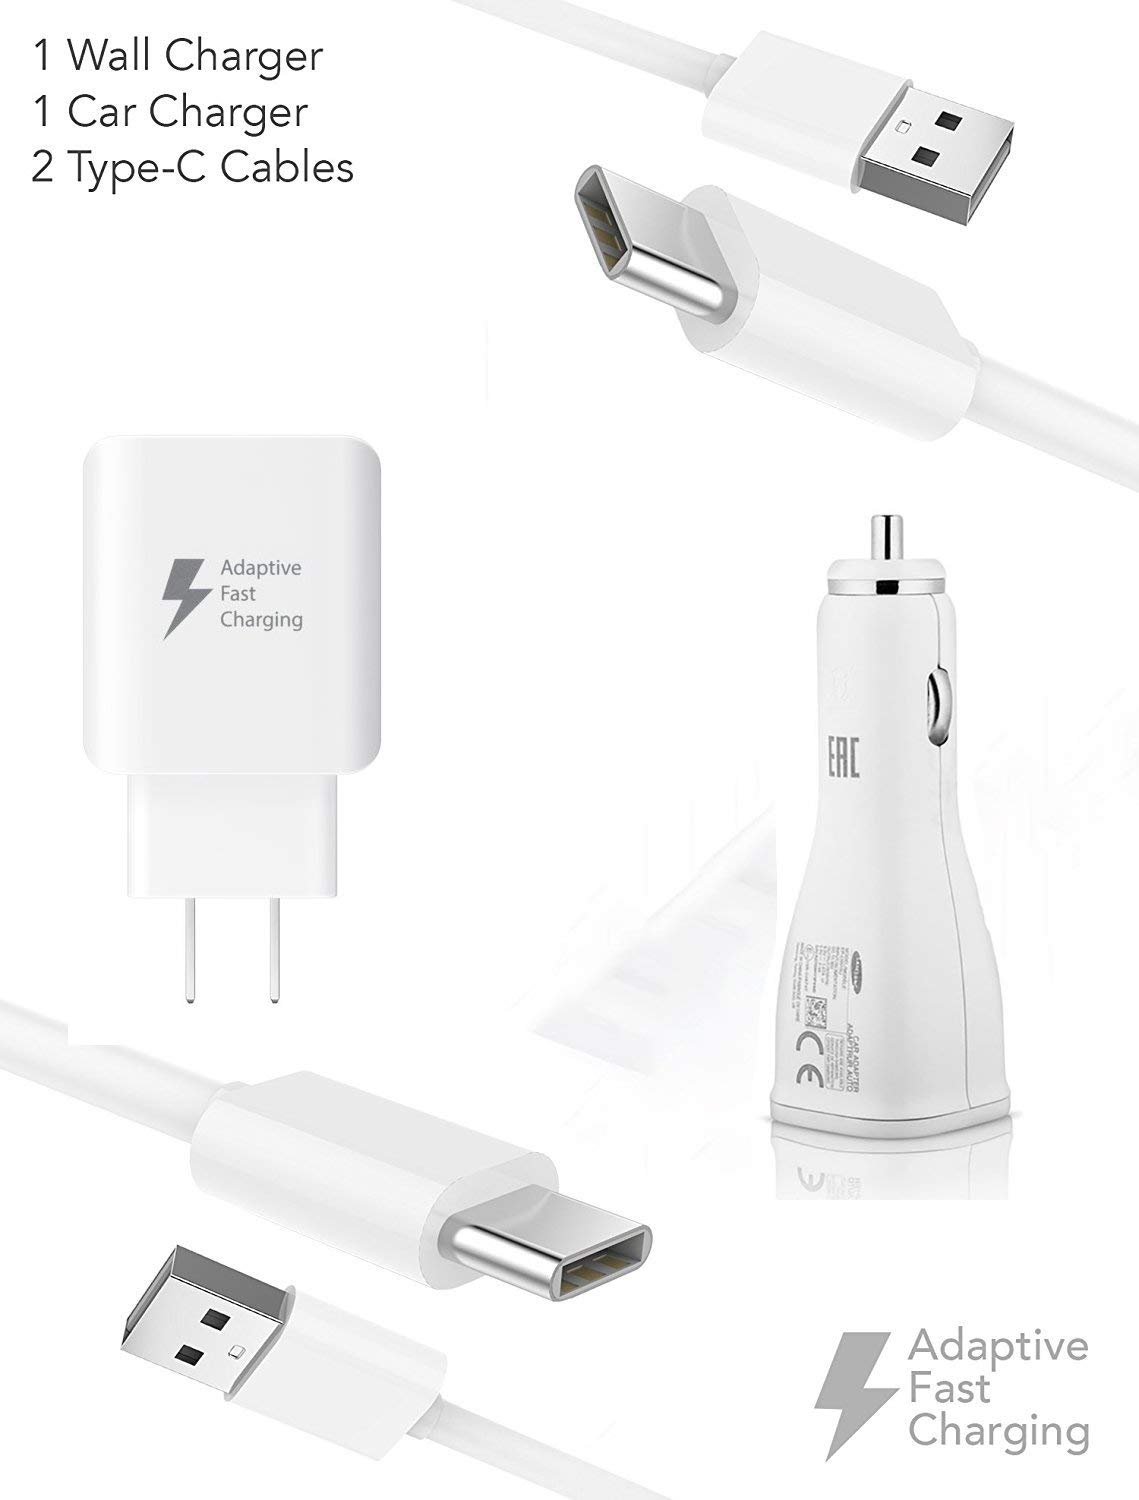 Quick Adaptive Turbo 18W Wall & Car Dual-Port USB Kit works for Samsung Galaxy Note 10+ with (2) USB Type-C Cables! by Volt Plus Tech